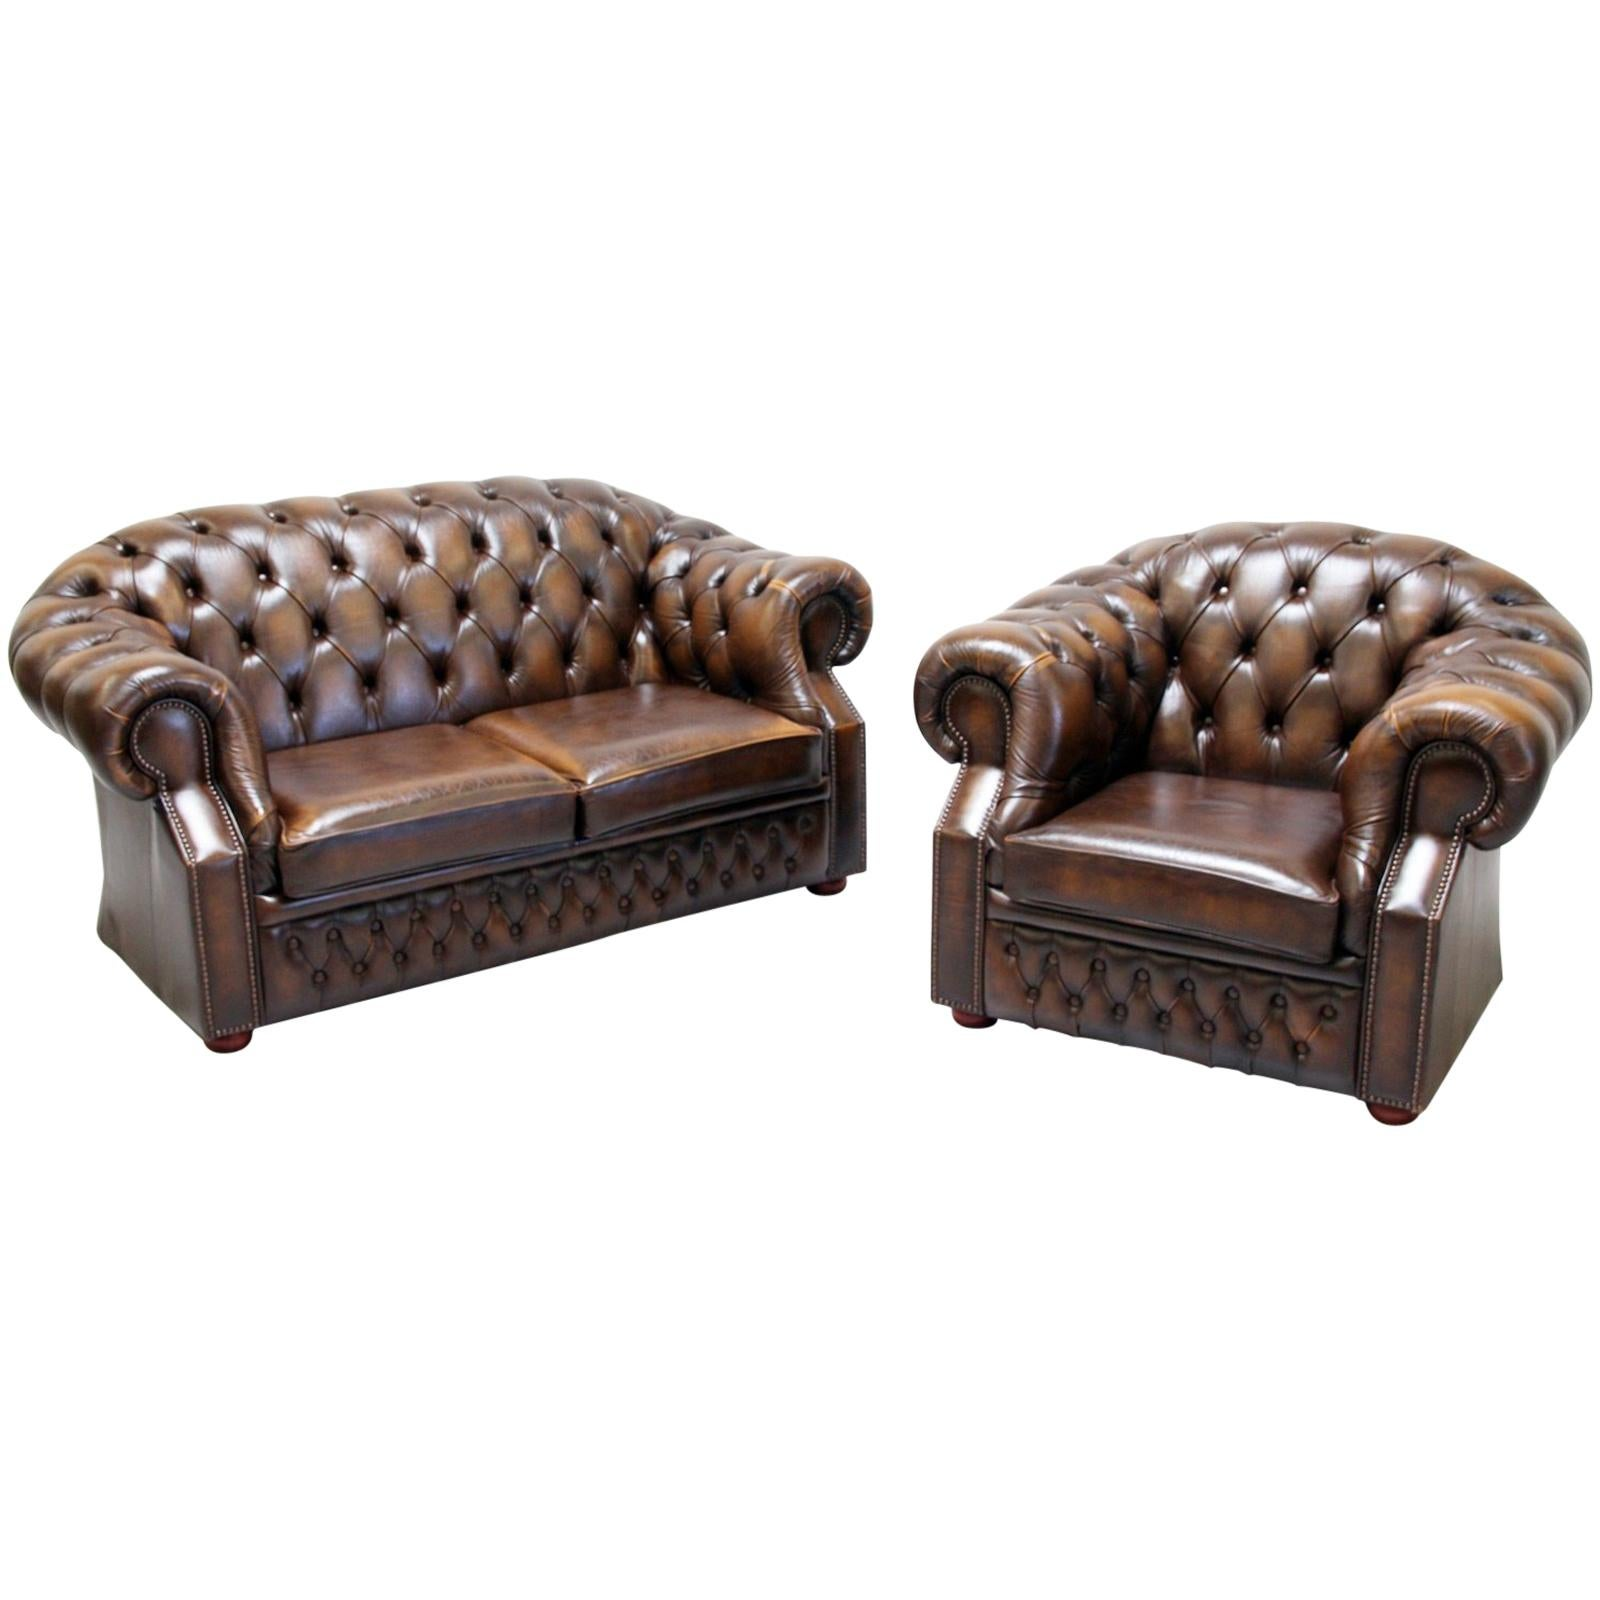 Chesterfield Sofa Set Armchair Genuine Leather Couch Antique